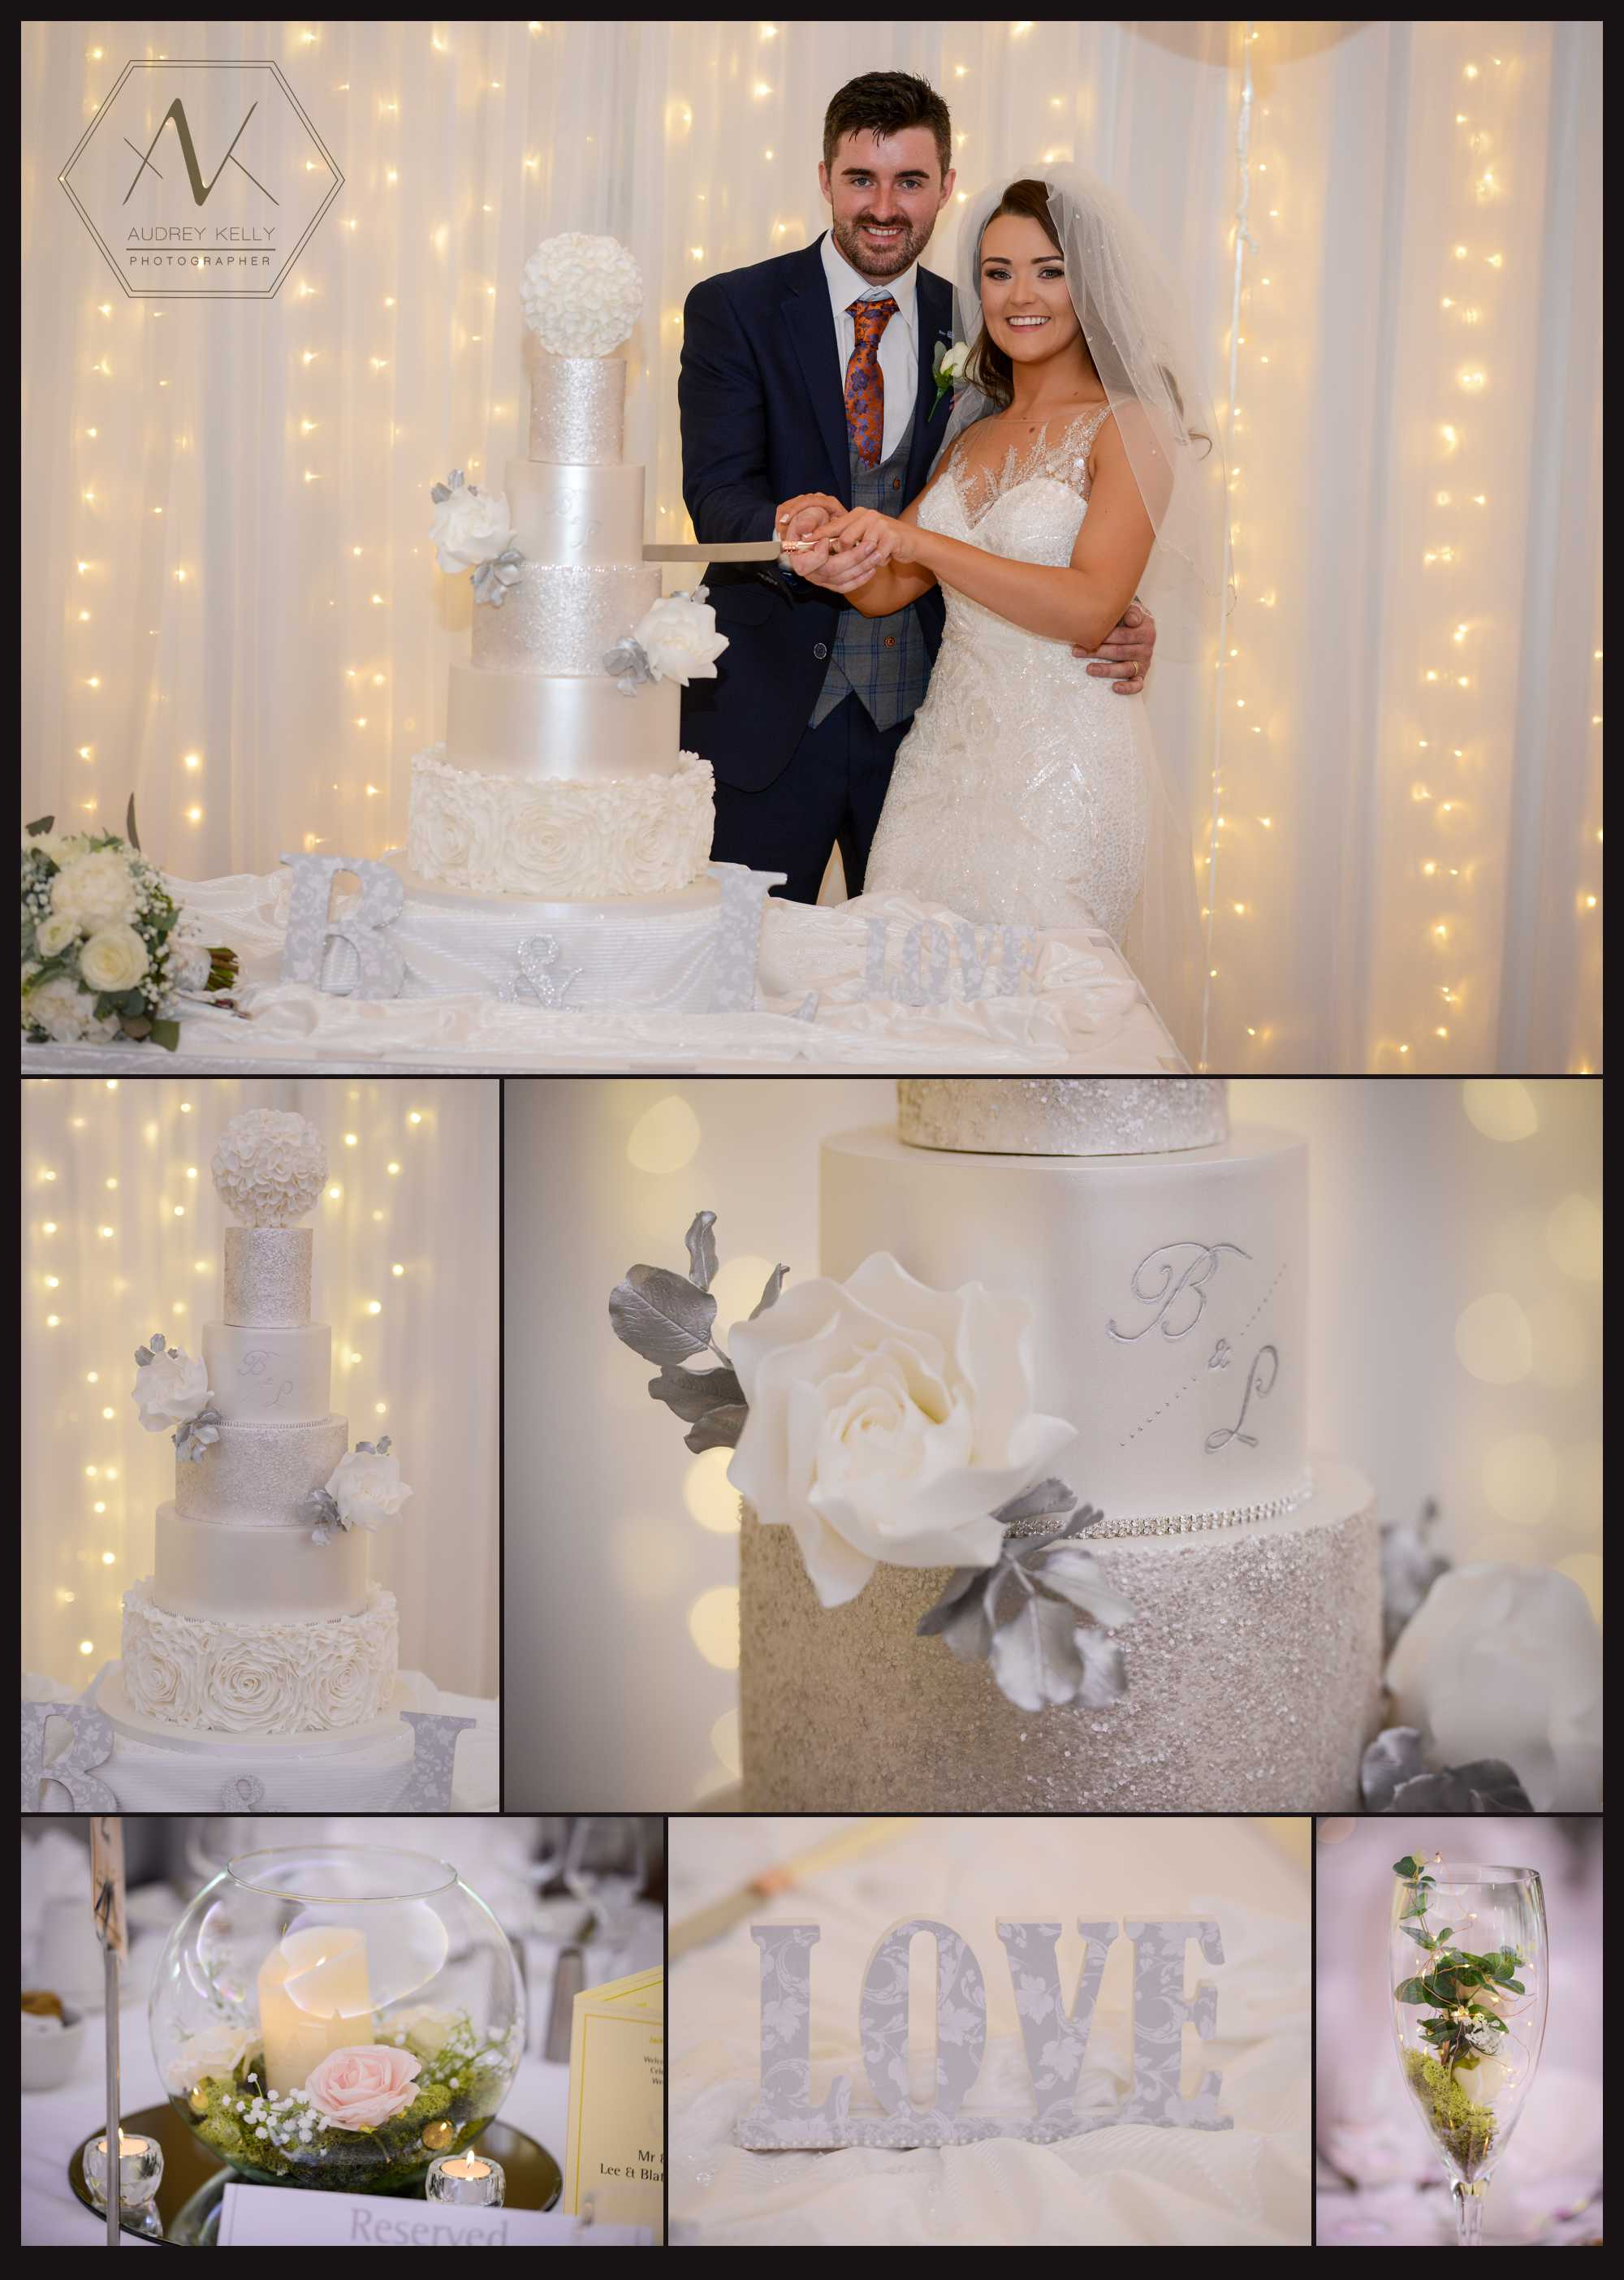 wedding Cake design by: Yumtastic Cakes ,Omagh.